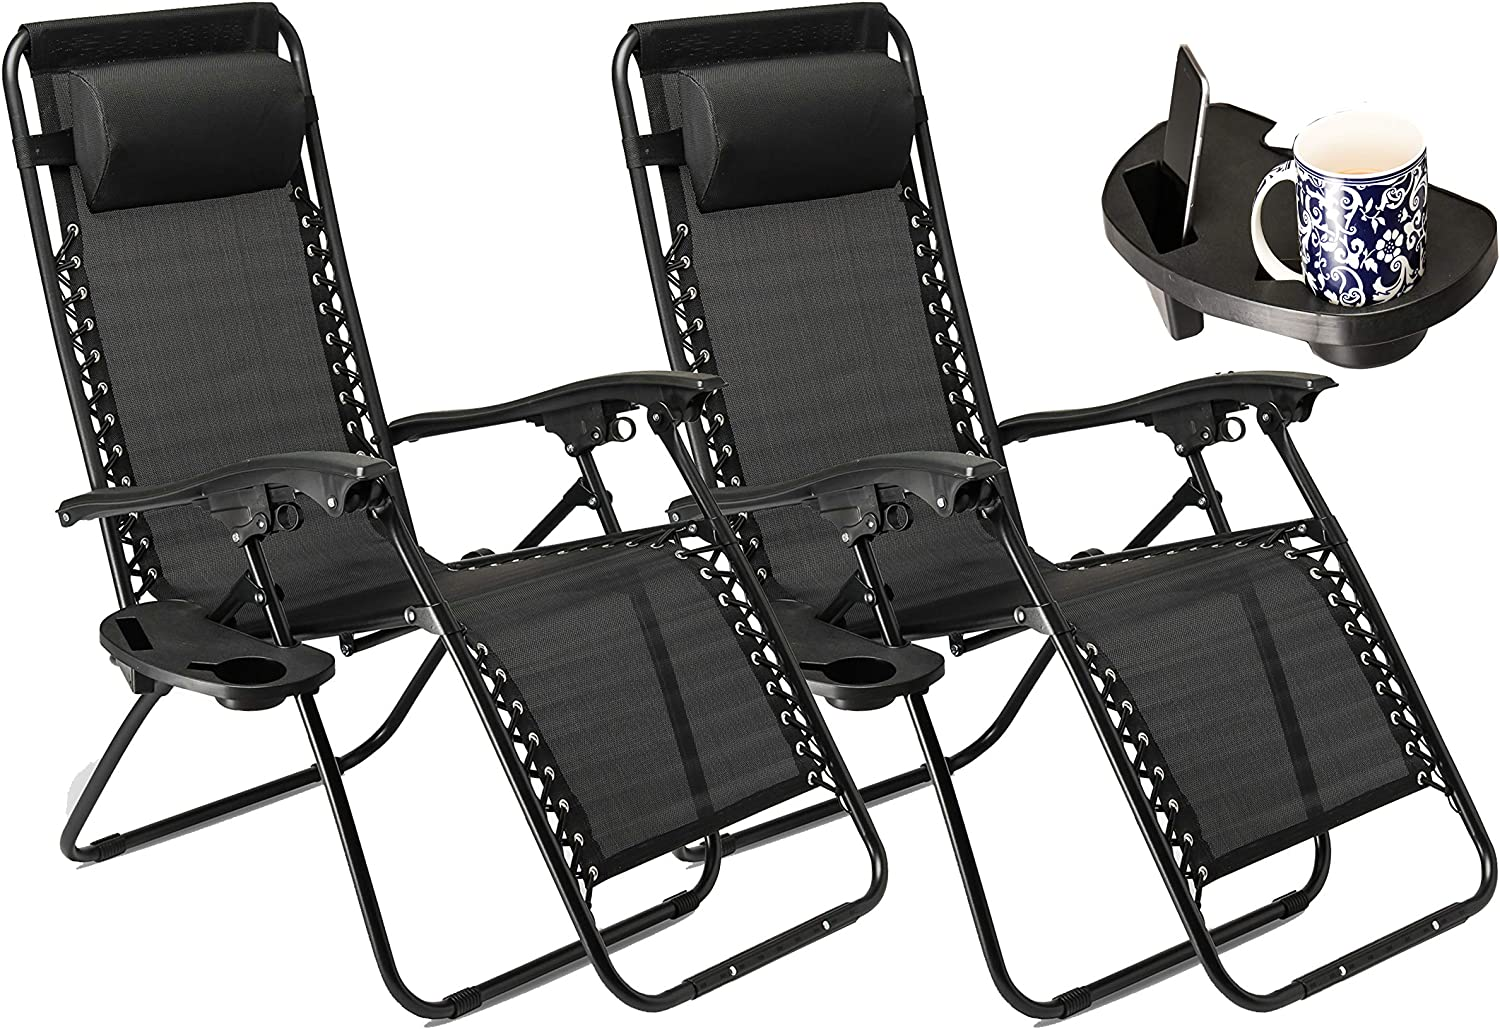 SUNMER Set of 7 Sun Lounger Garden Chairs With Cup And Phone Holder  Deck  Folding Recliner Zero Gravity Outdoor Chair - Black